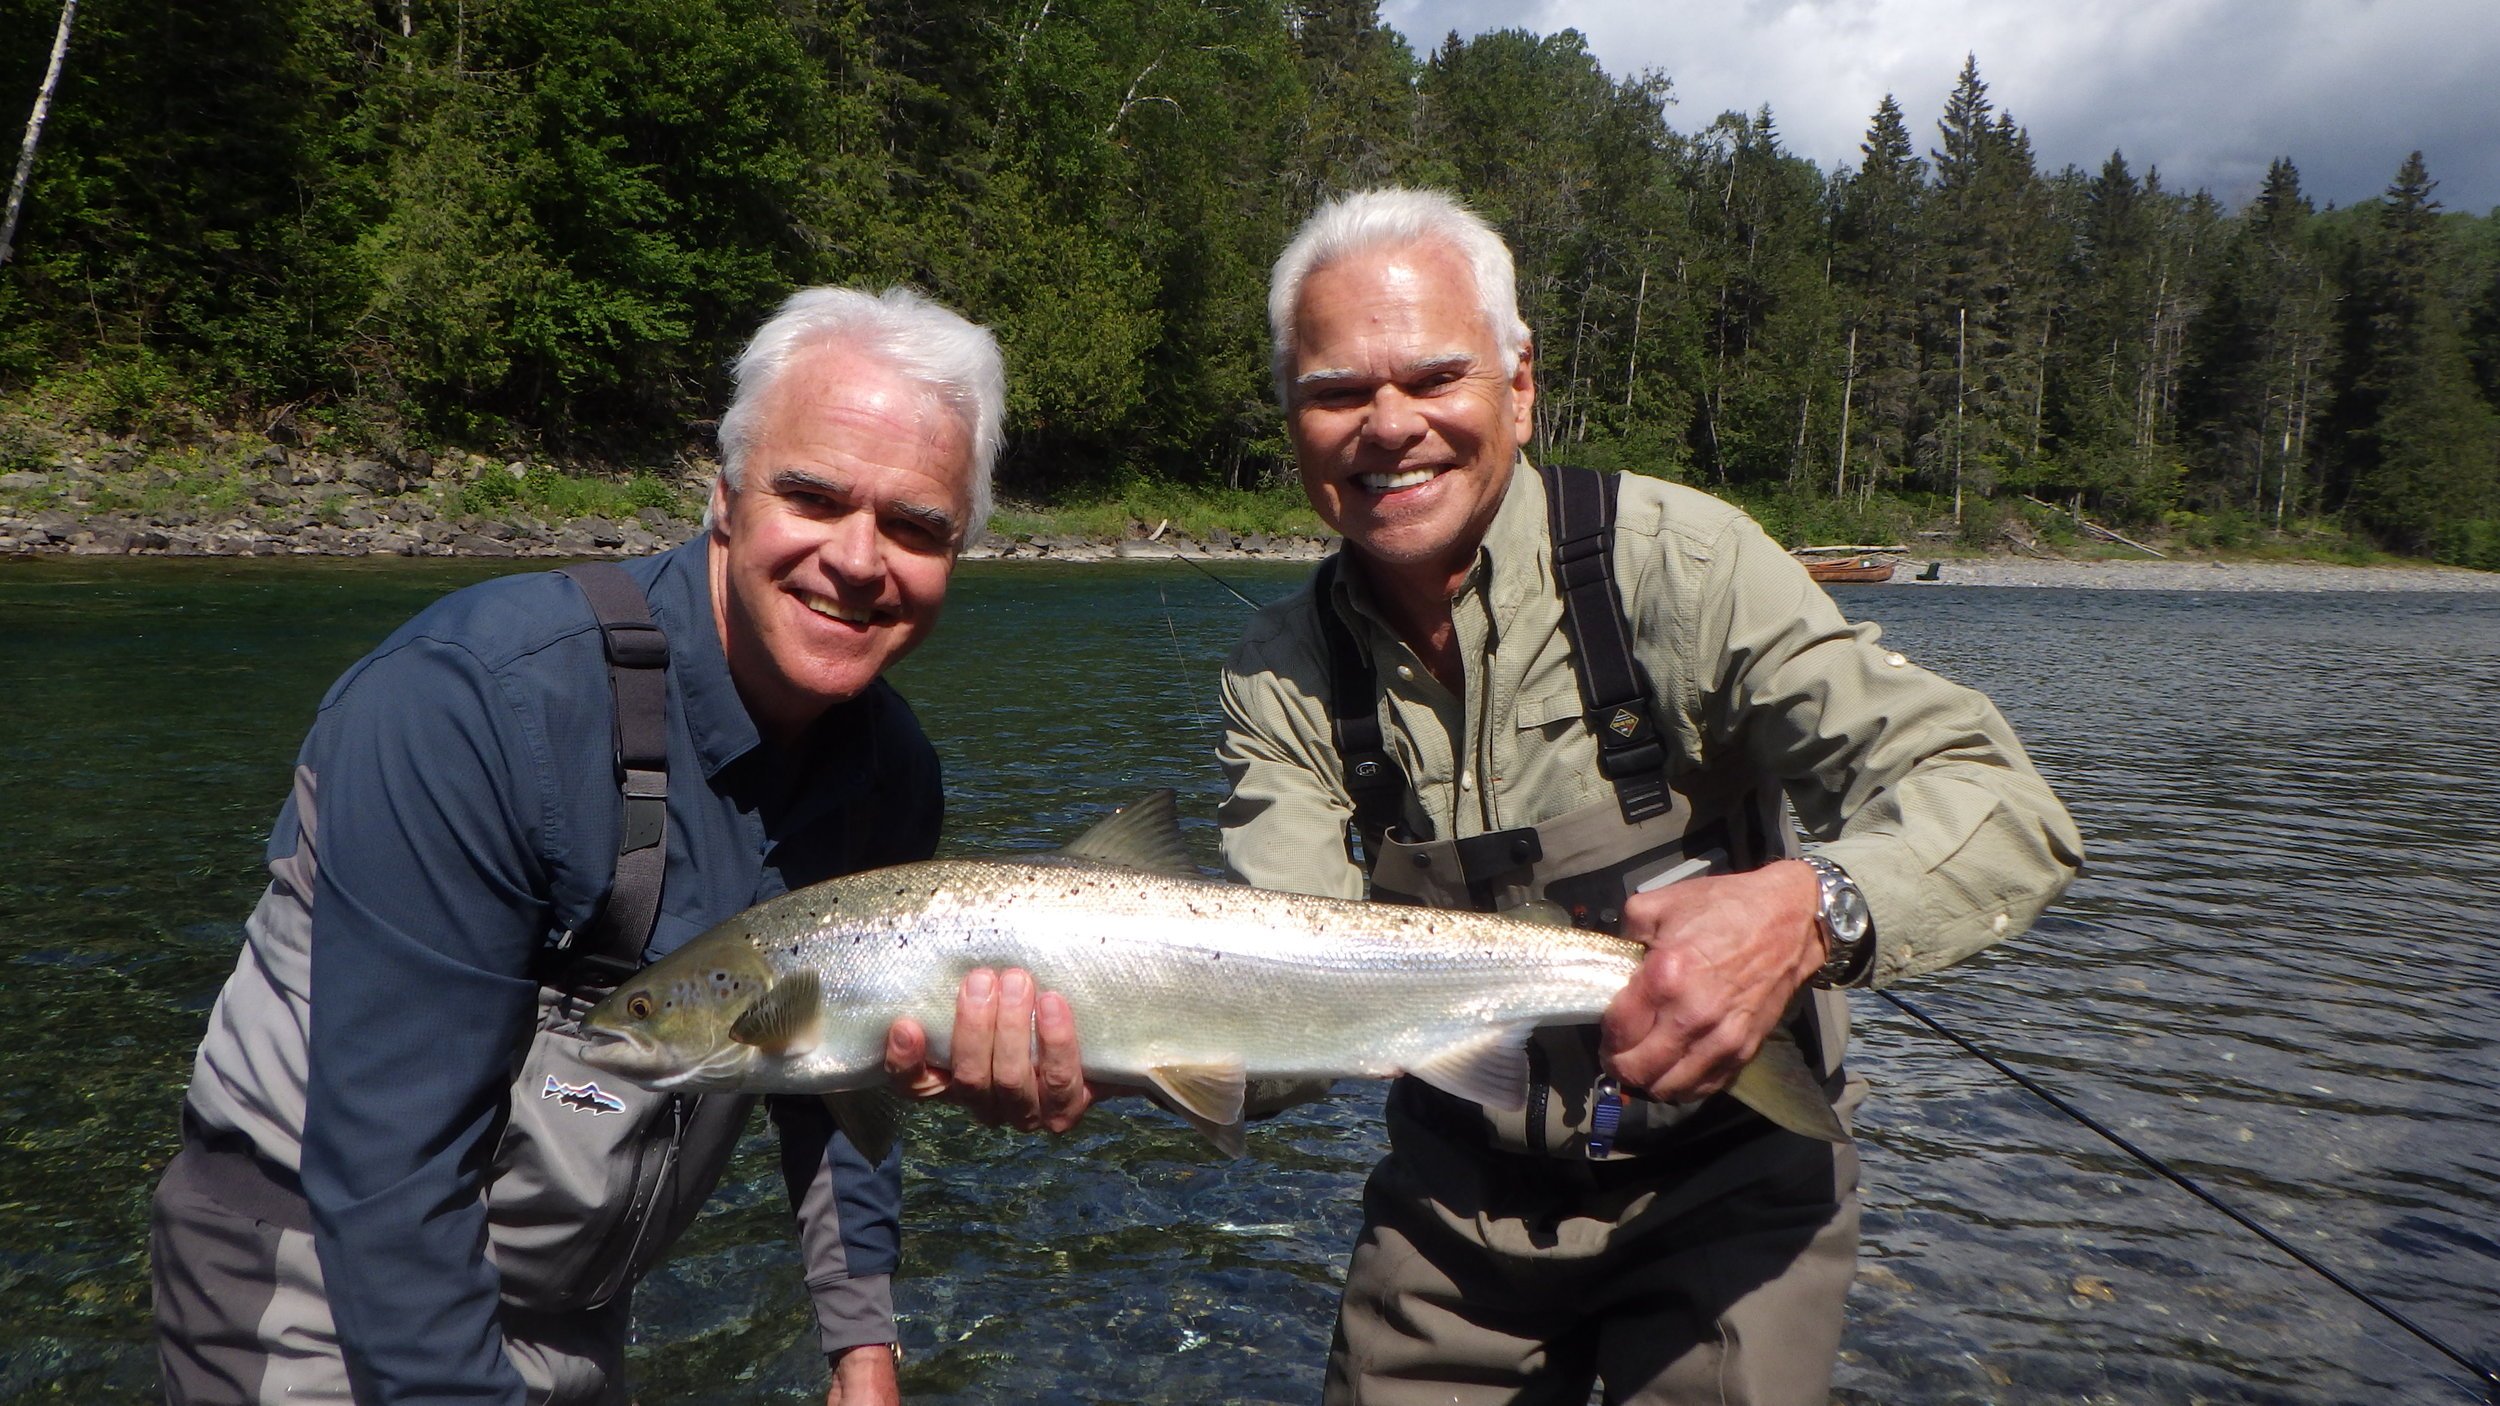 Mac & Dale Fox release another one on the Bonaventure! Nicely done!